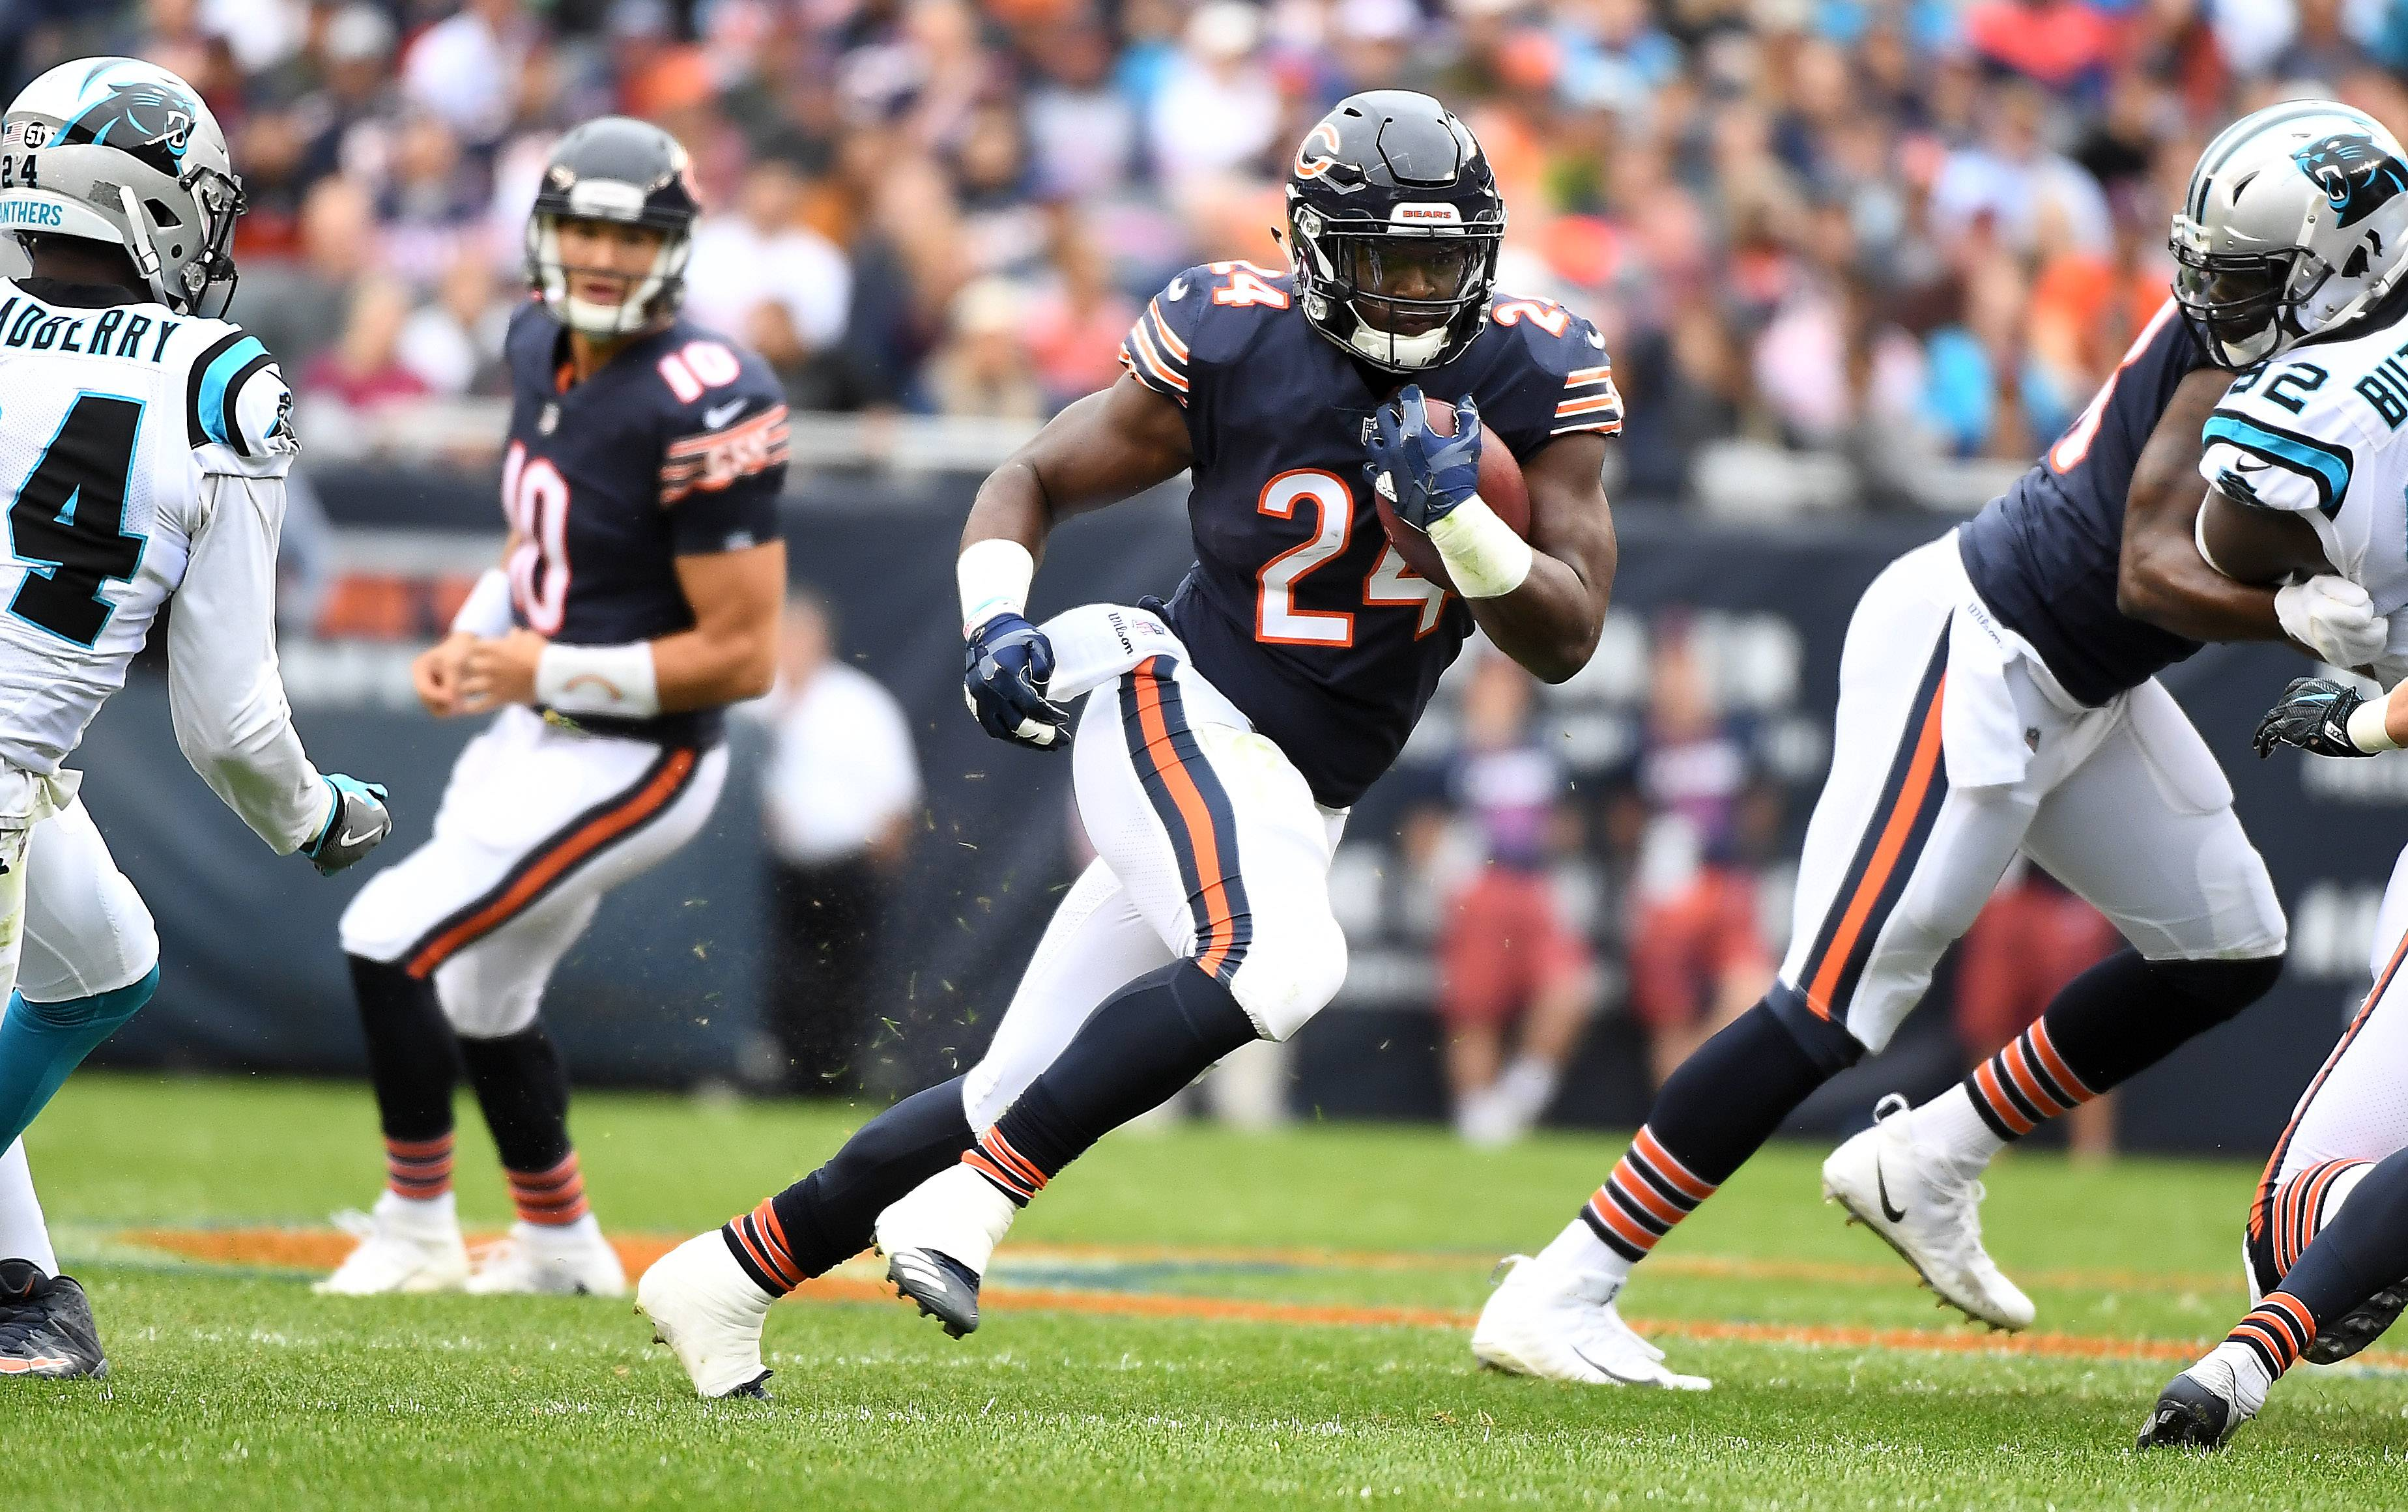 Howard's productivity one constant in Bears offense